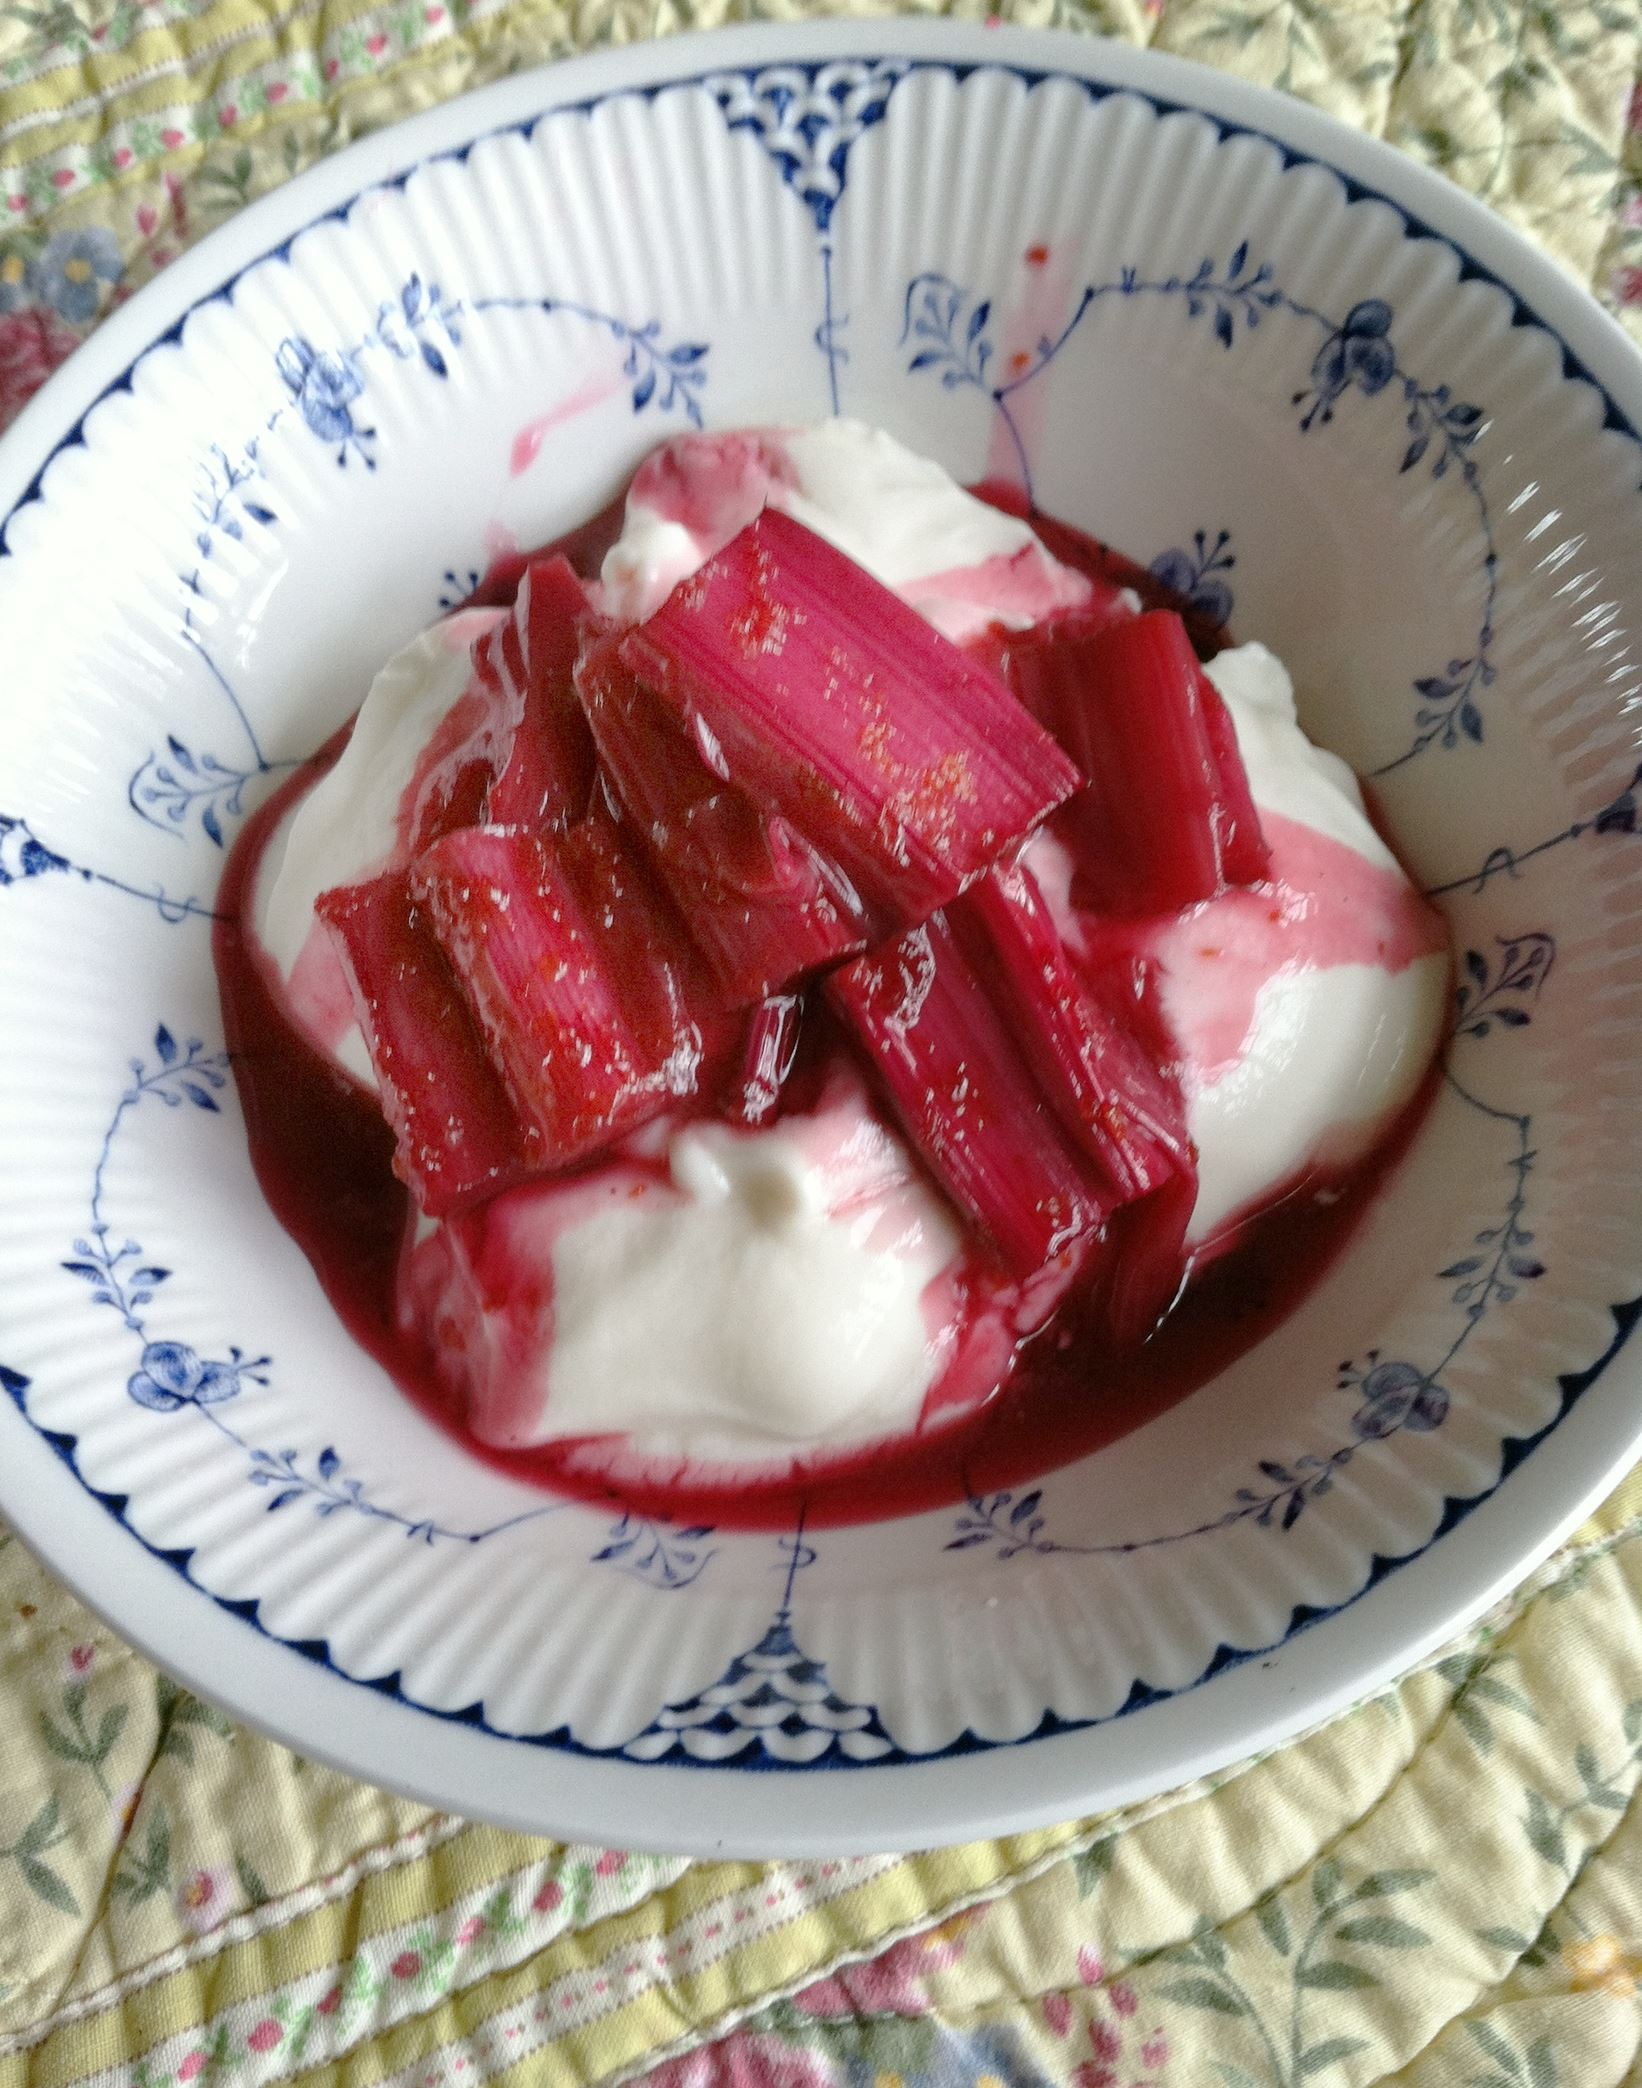 20140331horhubarbfood Ported rhubarb on yogurt.